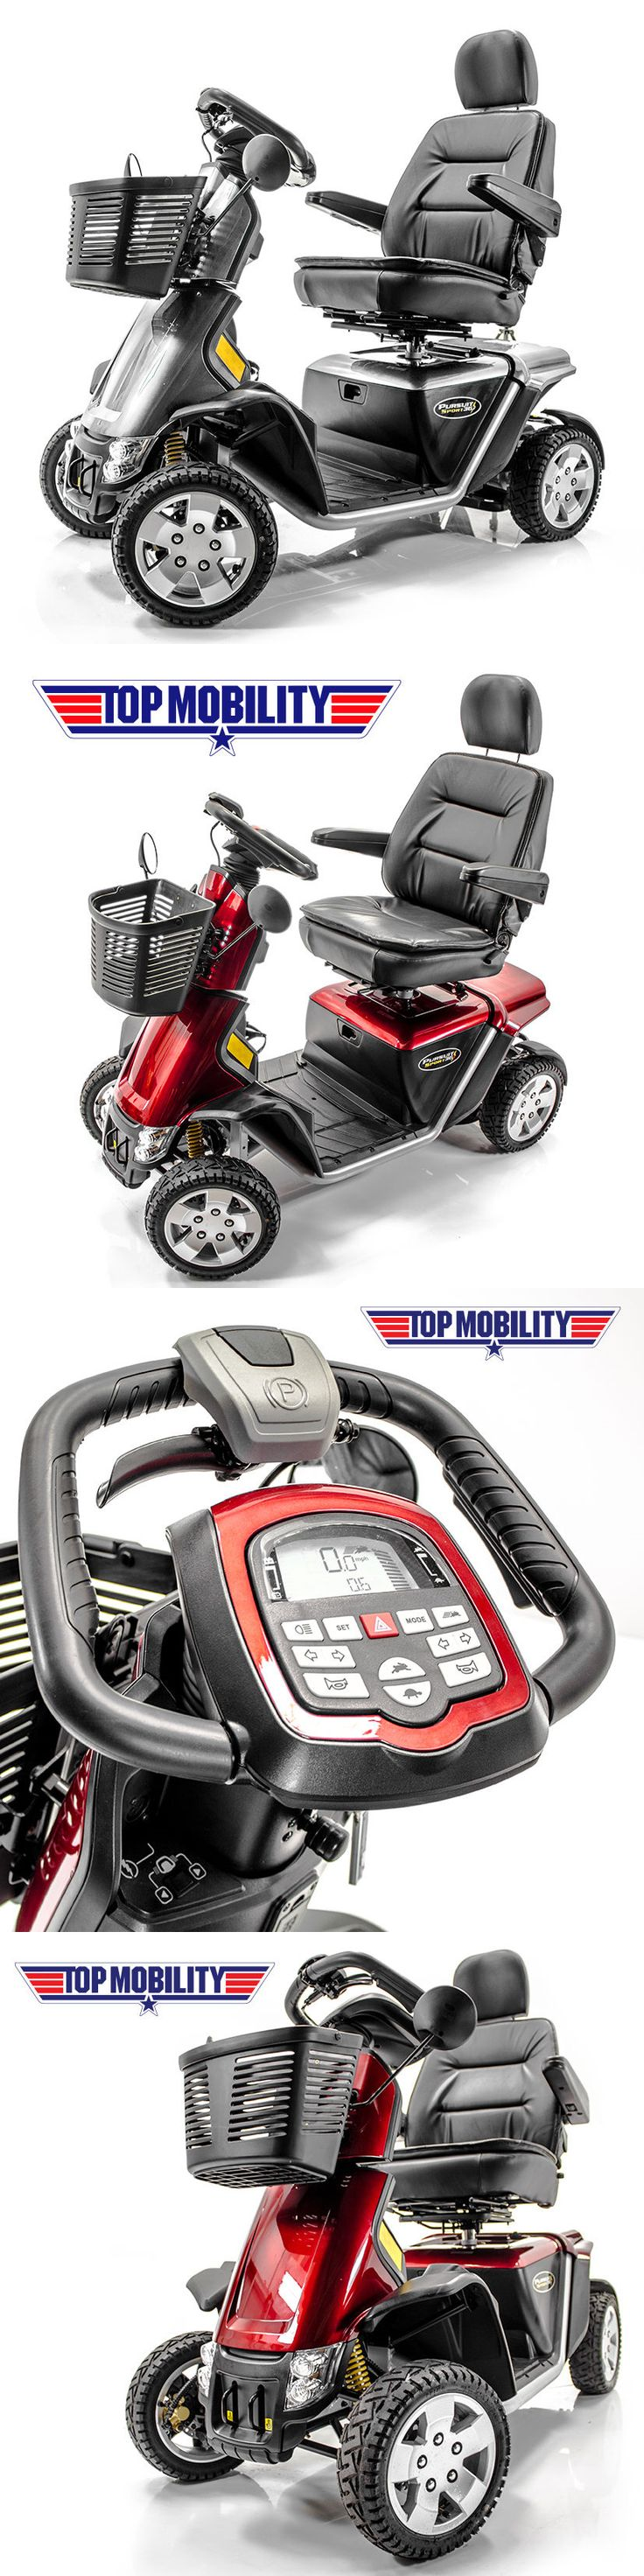 The exciting brand new street legal cruser sport elec car amp golf cart - Mobility Scooters Pride Mobility Pursuit Sport 36v Heavy Duty Electric Scooter Mv714 Silver New